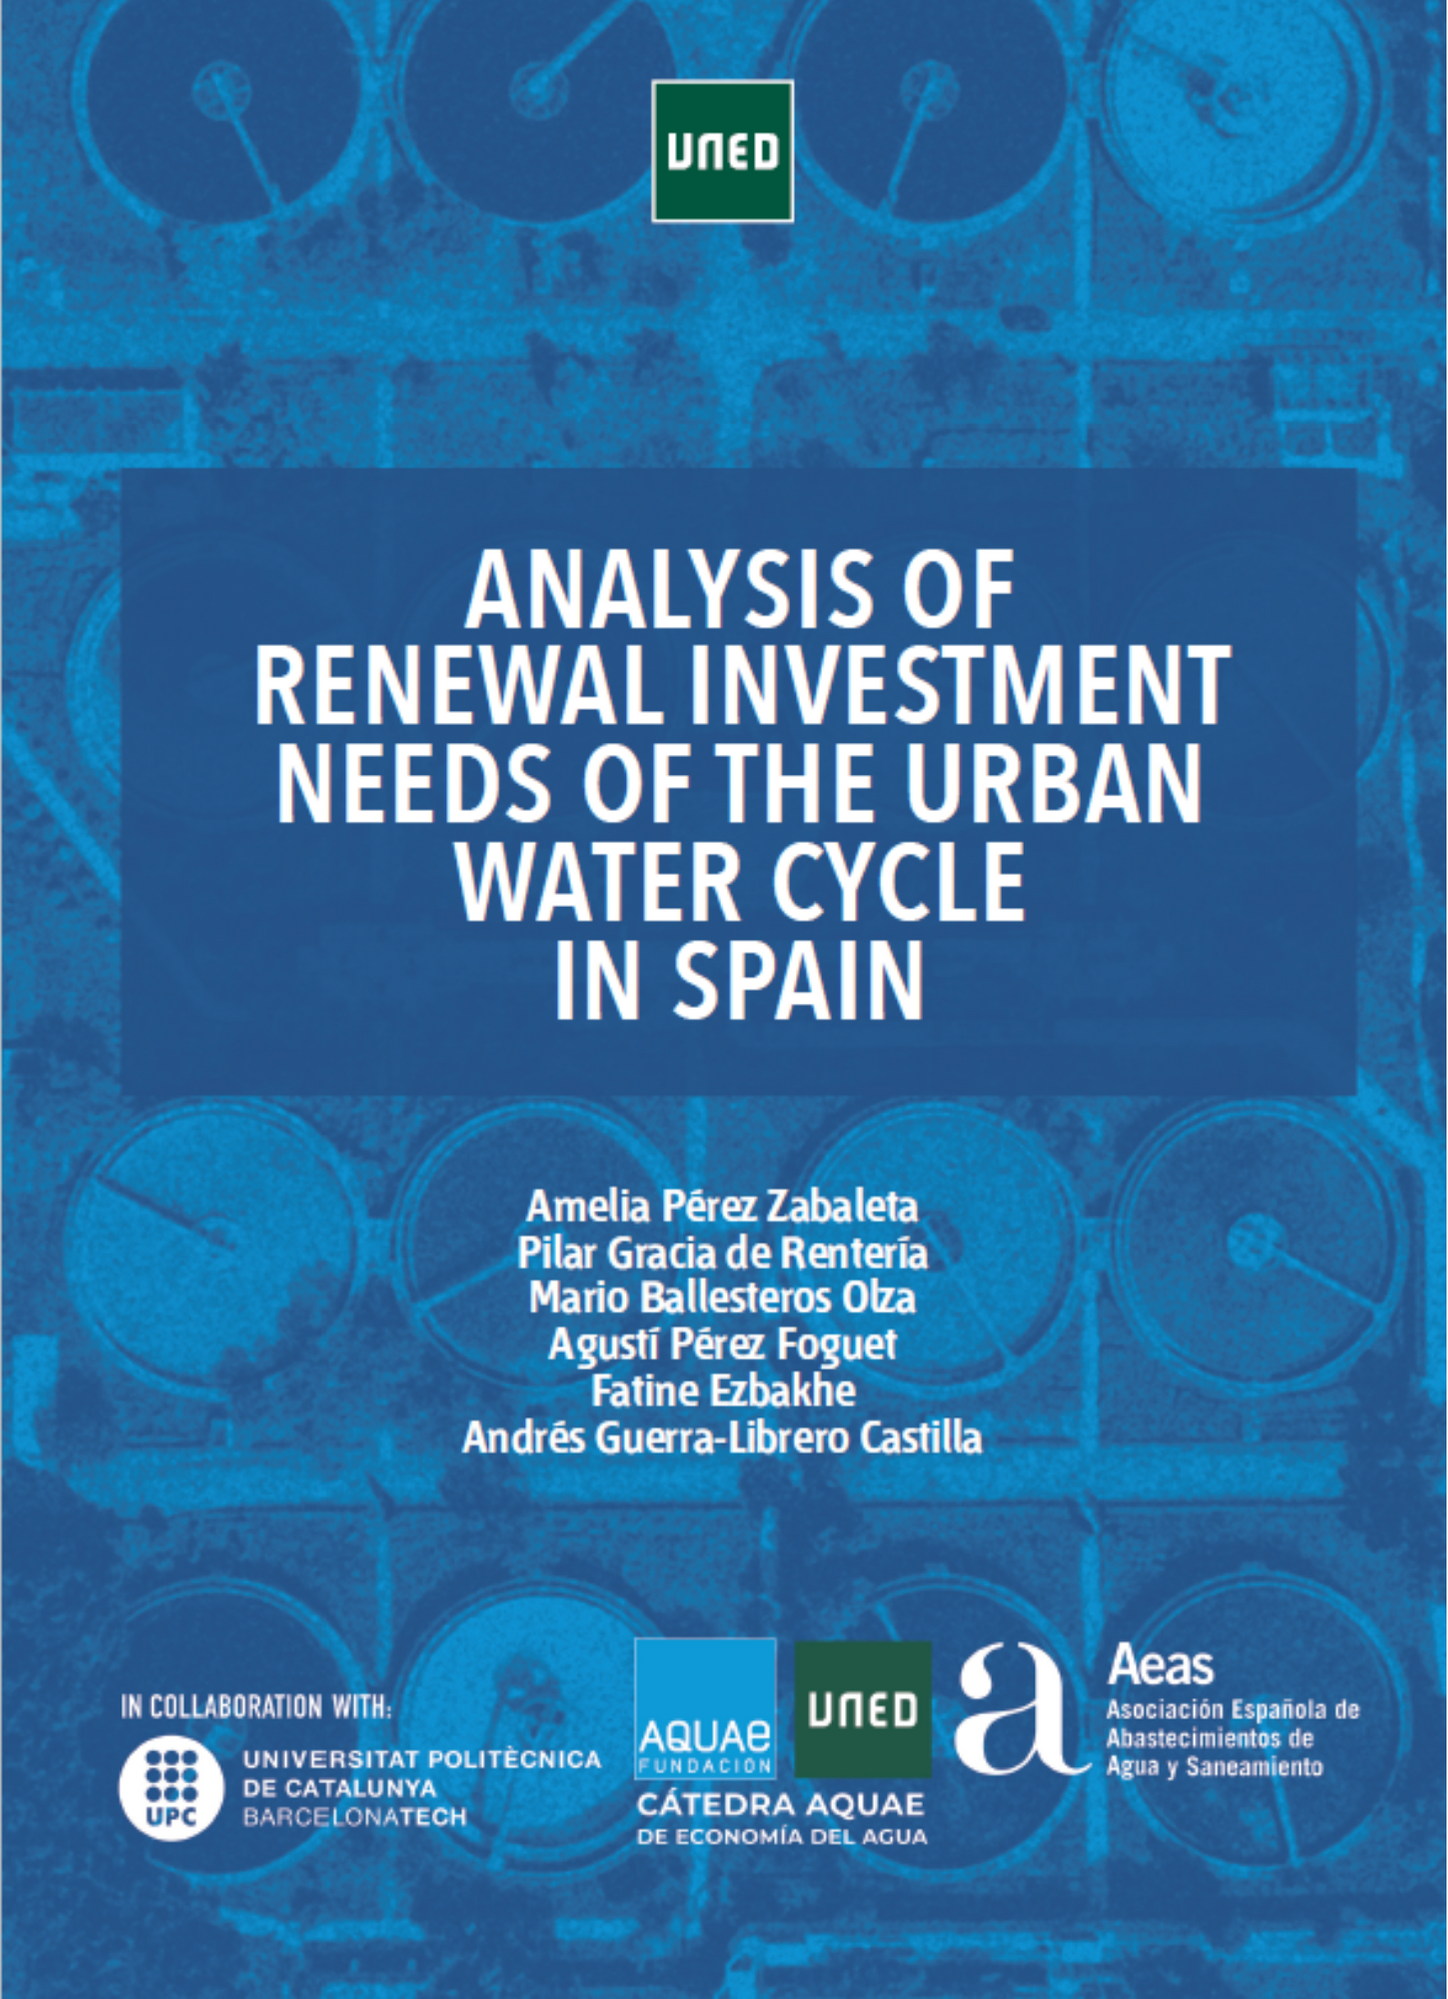 Analysis of the Renewal Investment needs of the Urban Water Cycle in Spain